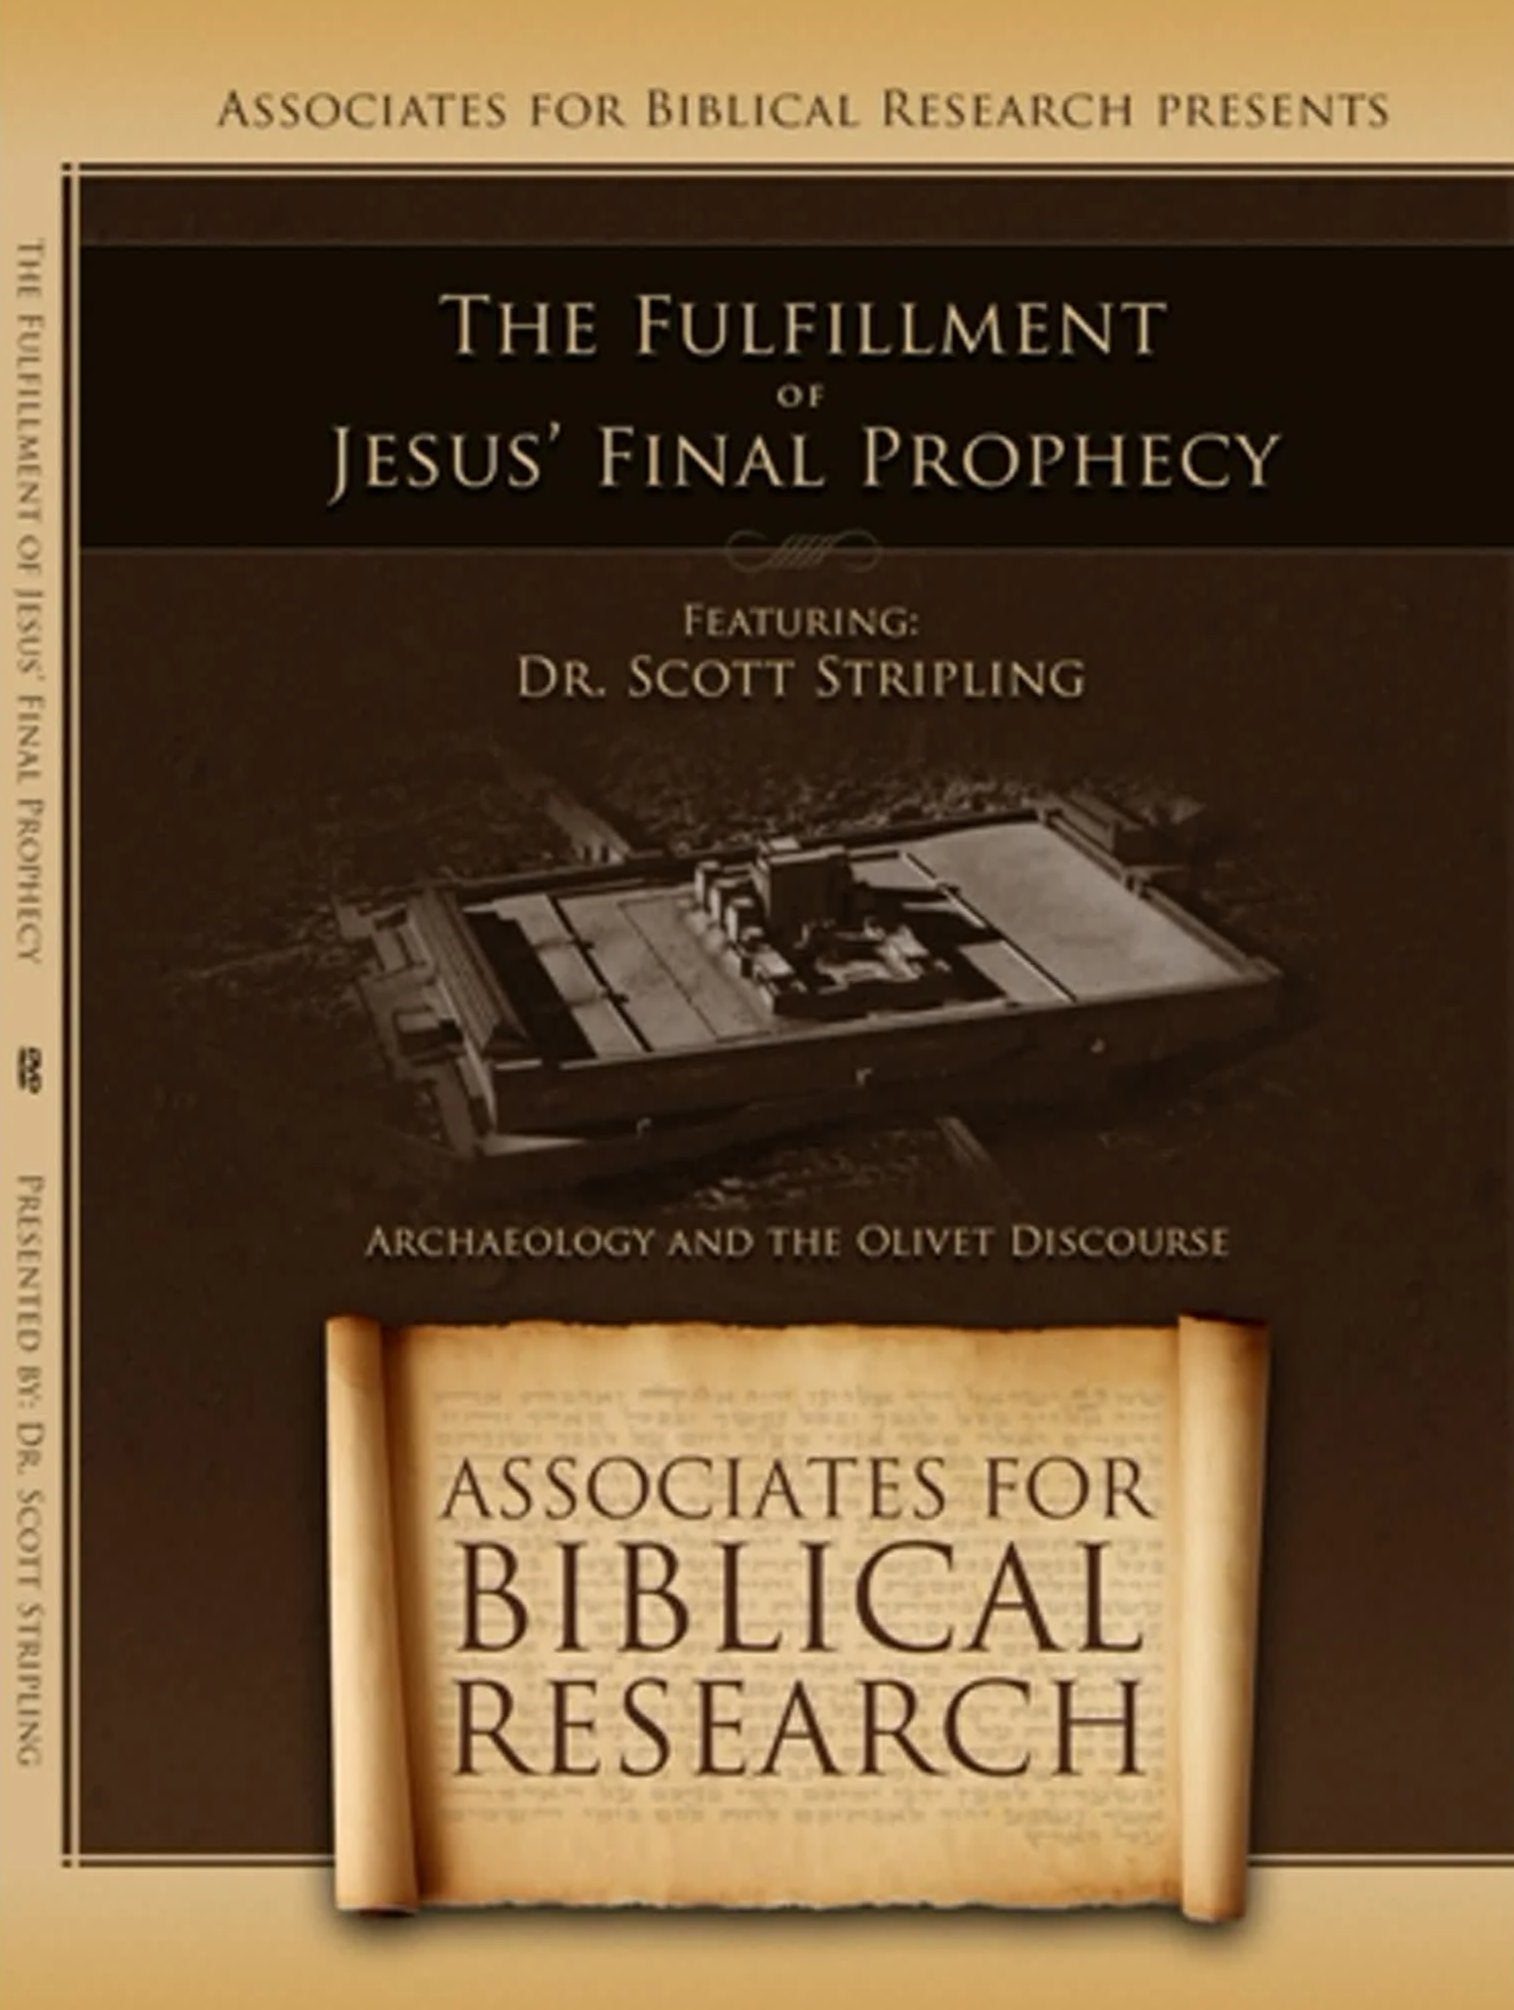 The Fulfillment of Jesus' Final Prophecy DVD